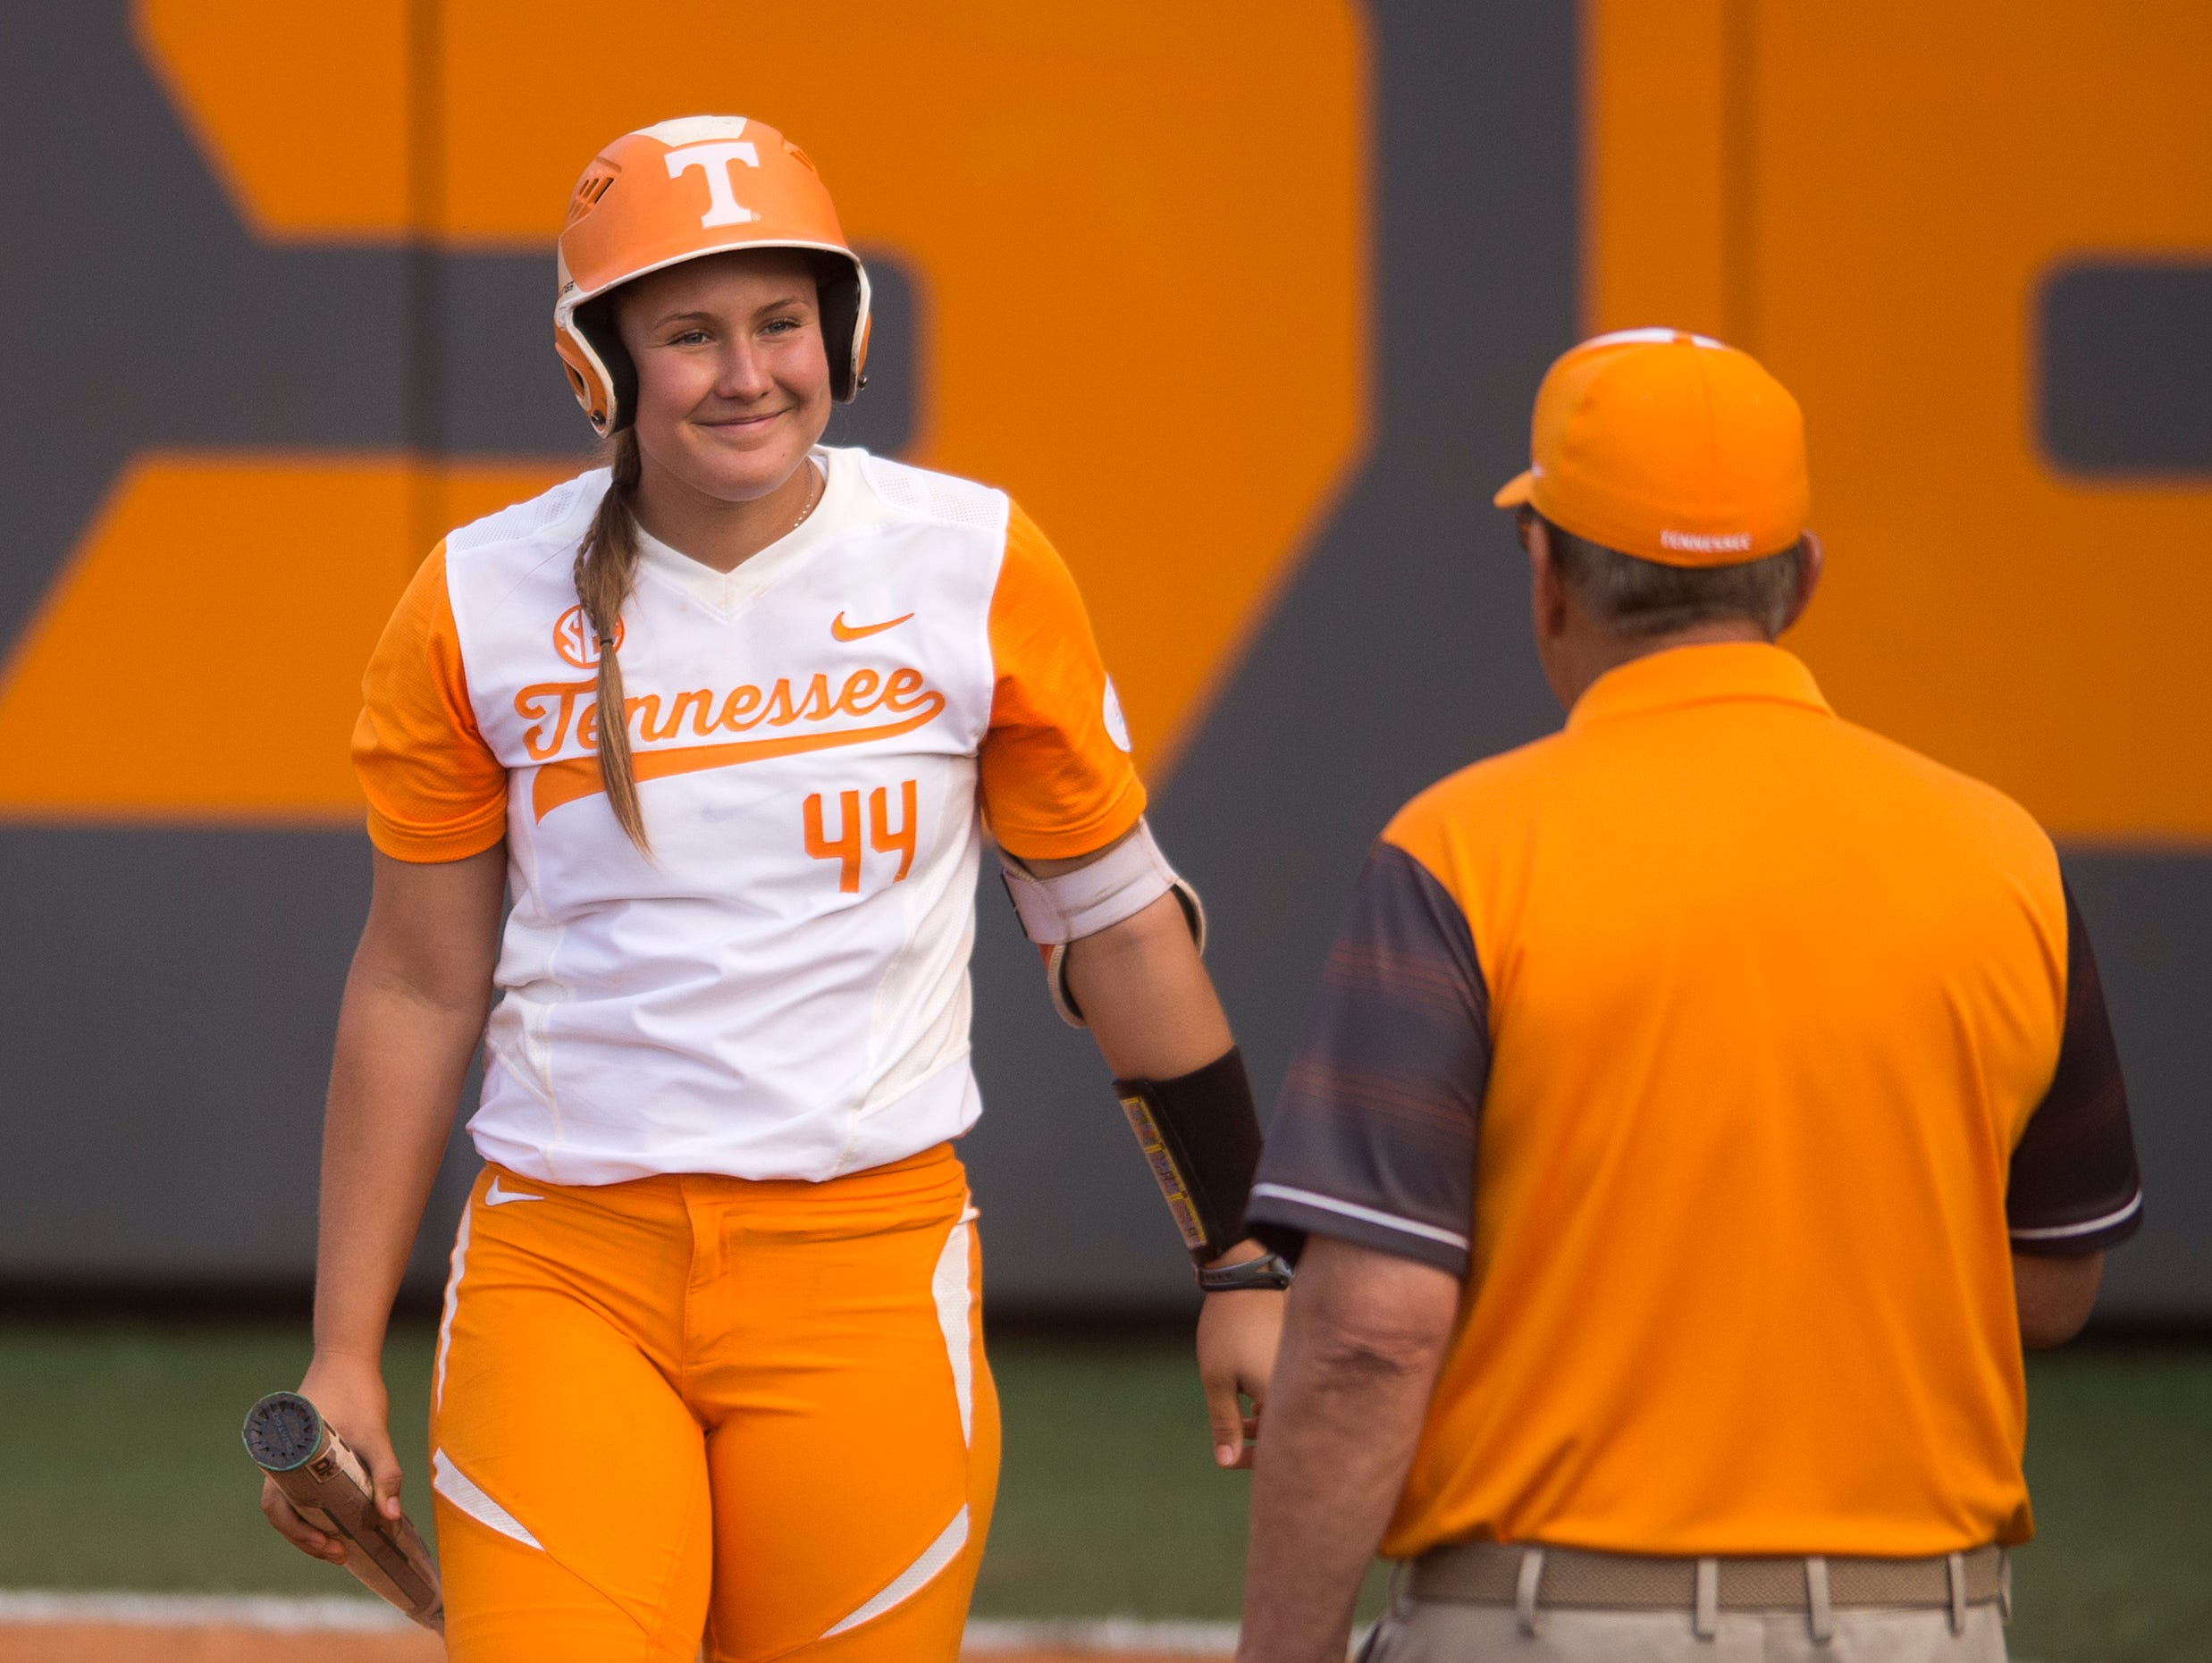 Tennessee's Abby Lockman (44) smiles as she walks over to Tennessee Softball Head Coach Ralph Weekly during an NCAA Super Regional game between Tennessee and Texas A&M at Sherri Parker Lee Stadium on Friday, May 26, 2017.